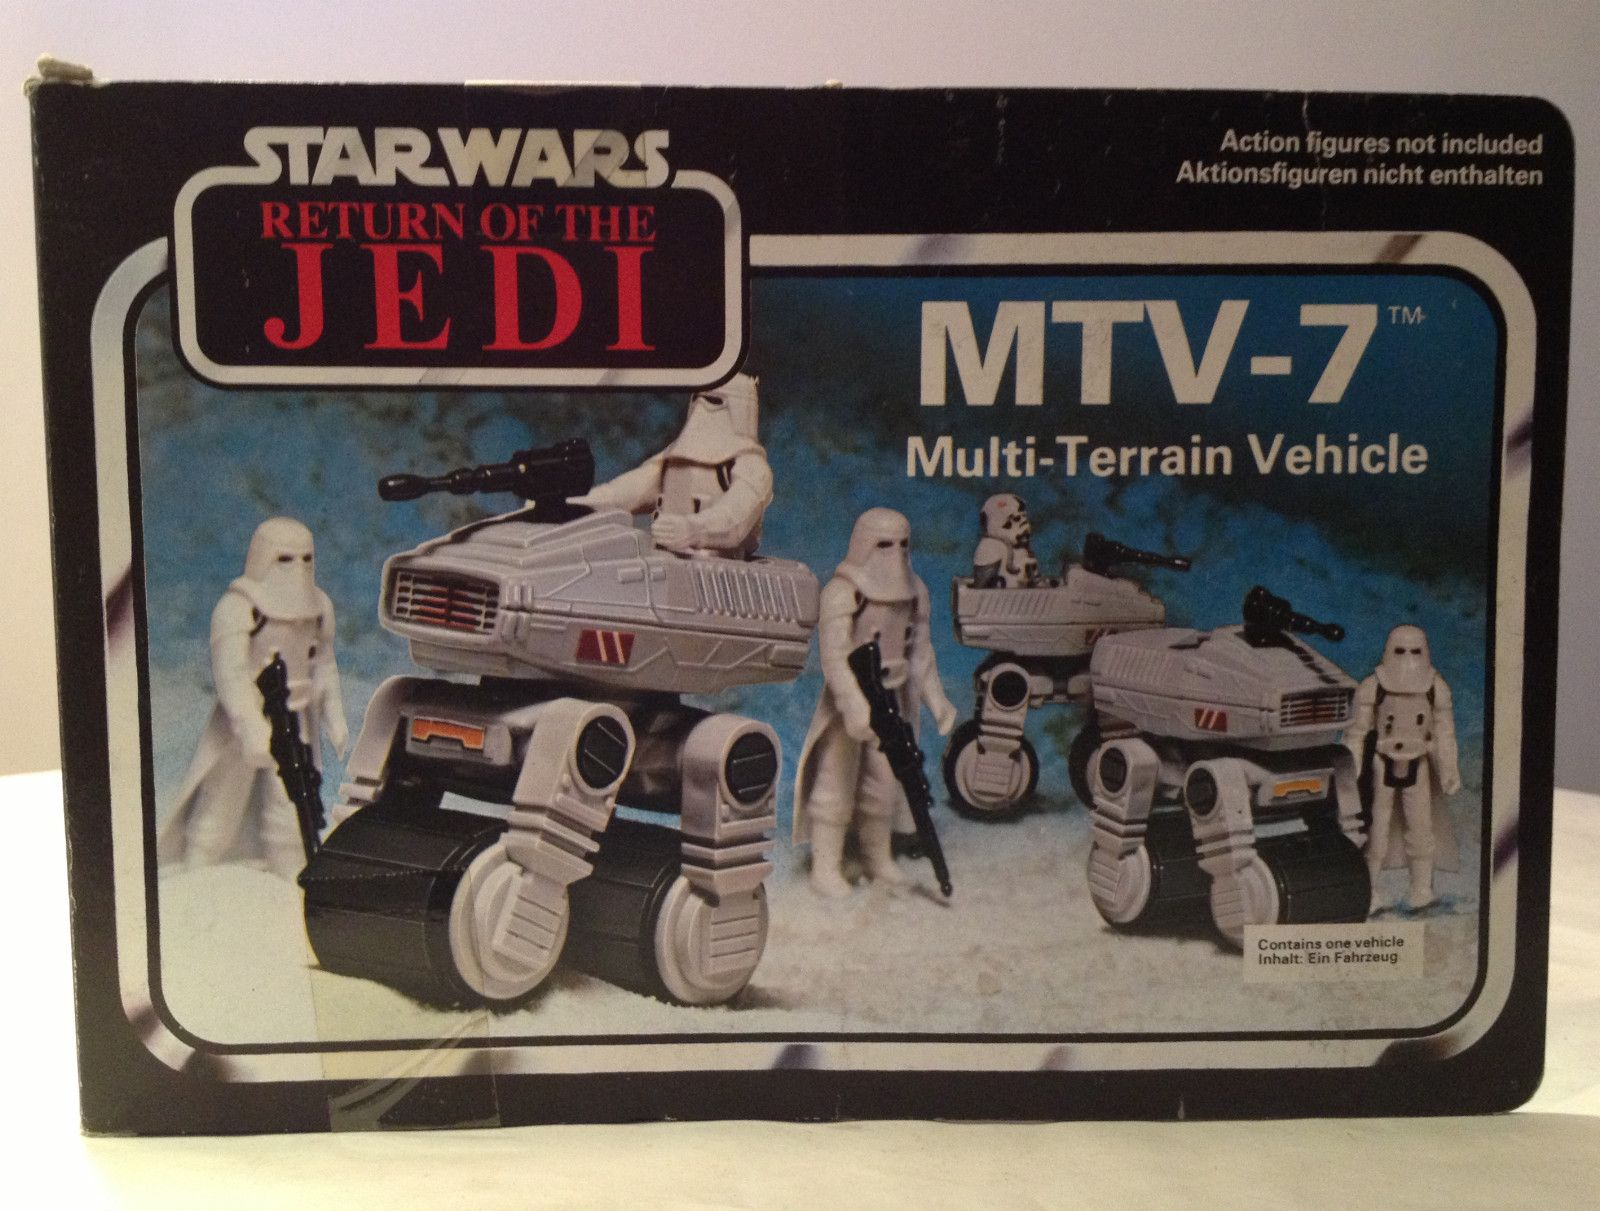 Pin By Jeff Amann On Childhood Vintage Star Wars Toys Star Wars Toys Star Wars Collection